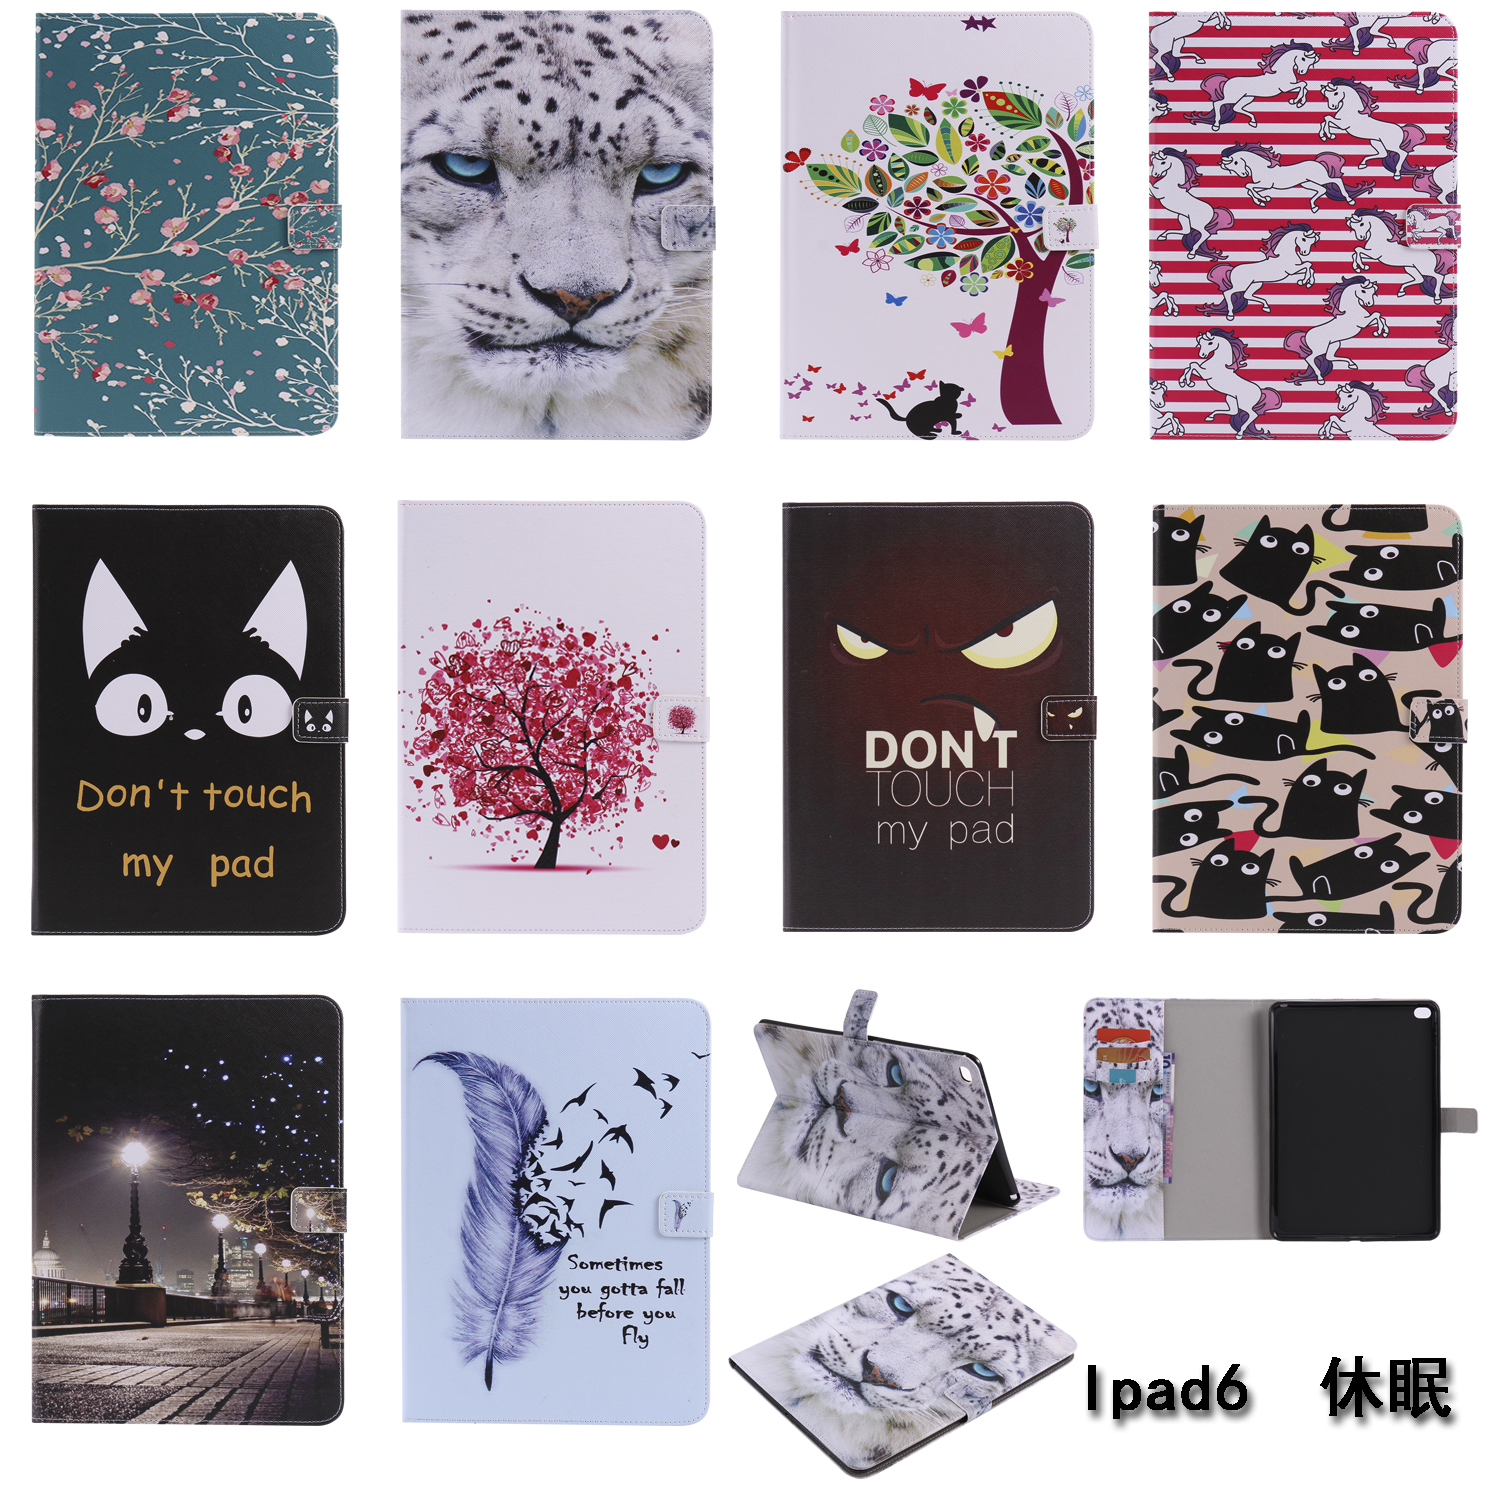 For Apple iPad Air 2 ipad 6 Don't touch my pad tree Cat Smart Tablet Stand Cases Cover For Apple ipad air 2 Case все цены